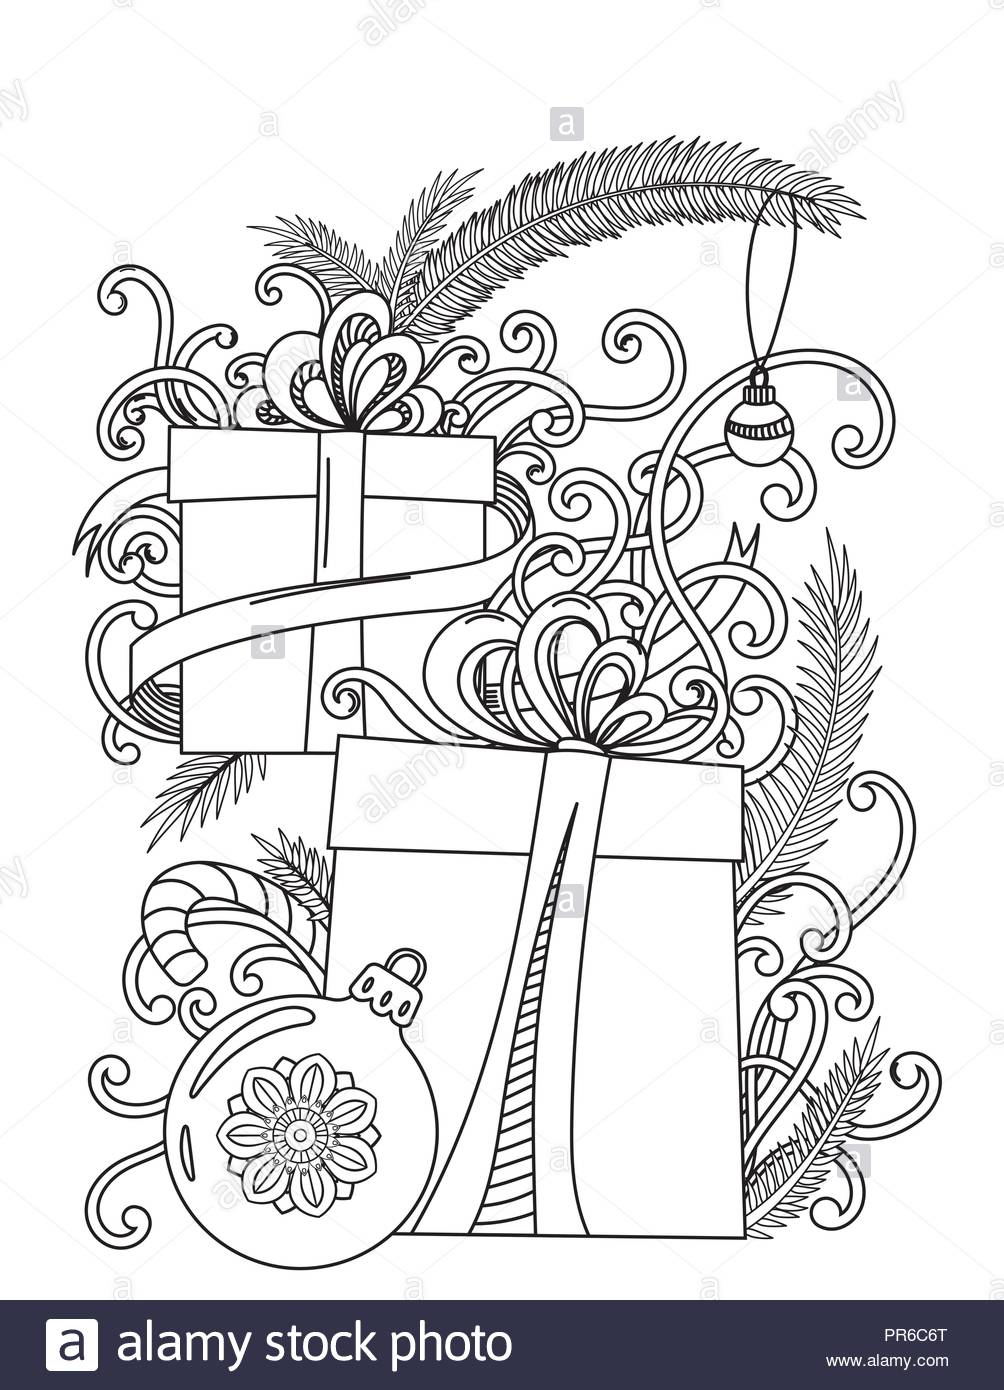 Christmas Coloring Book For Adults With Page Adult Holiday Gifts And